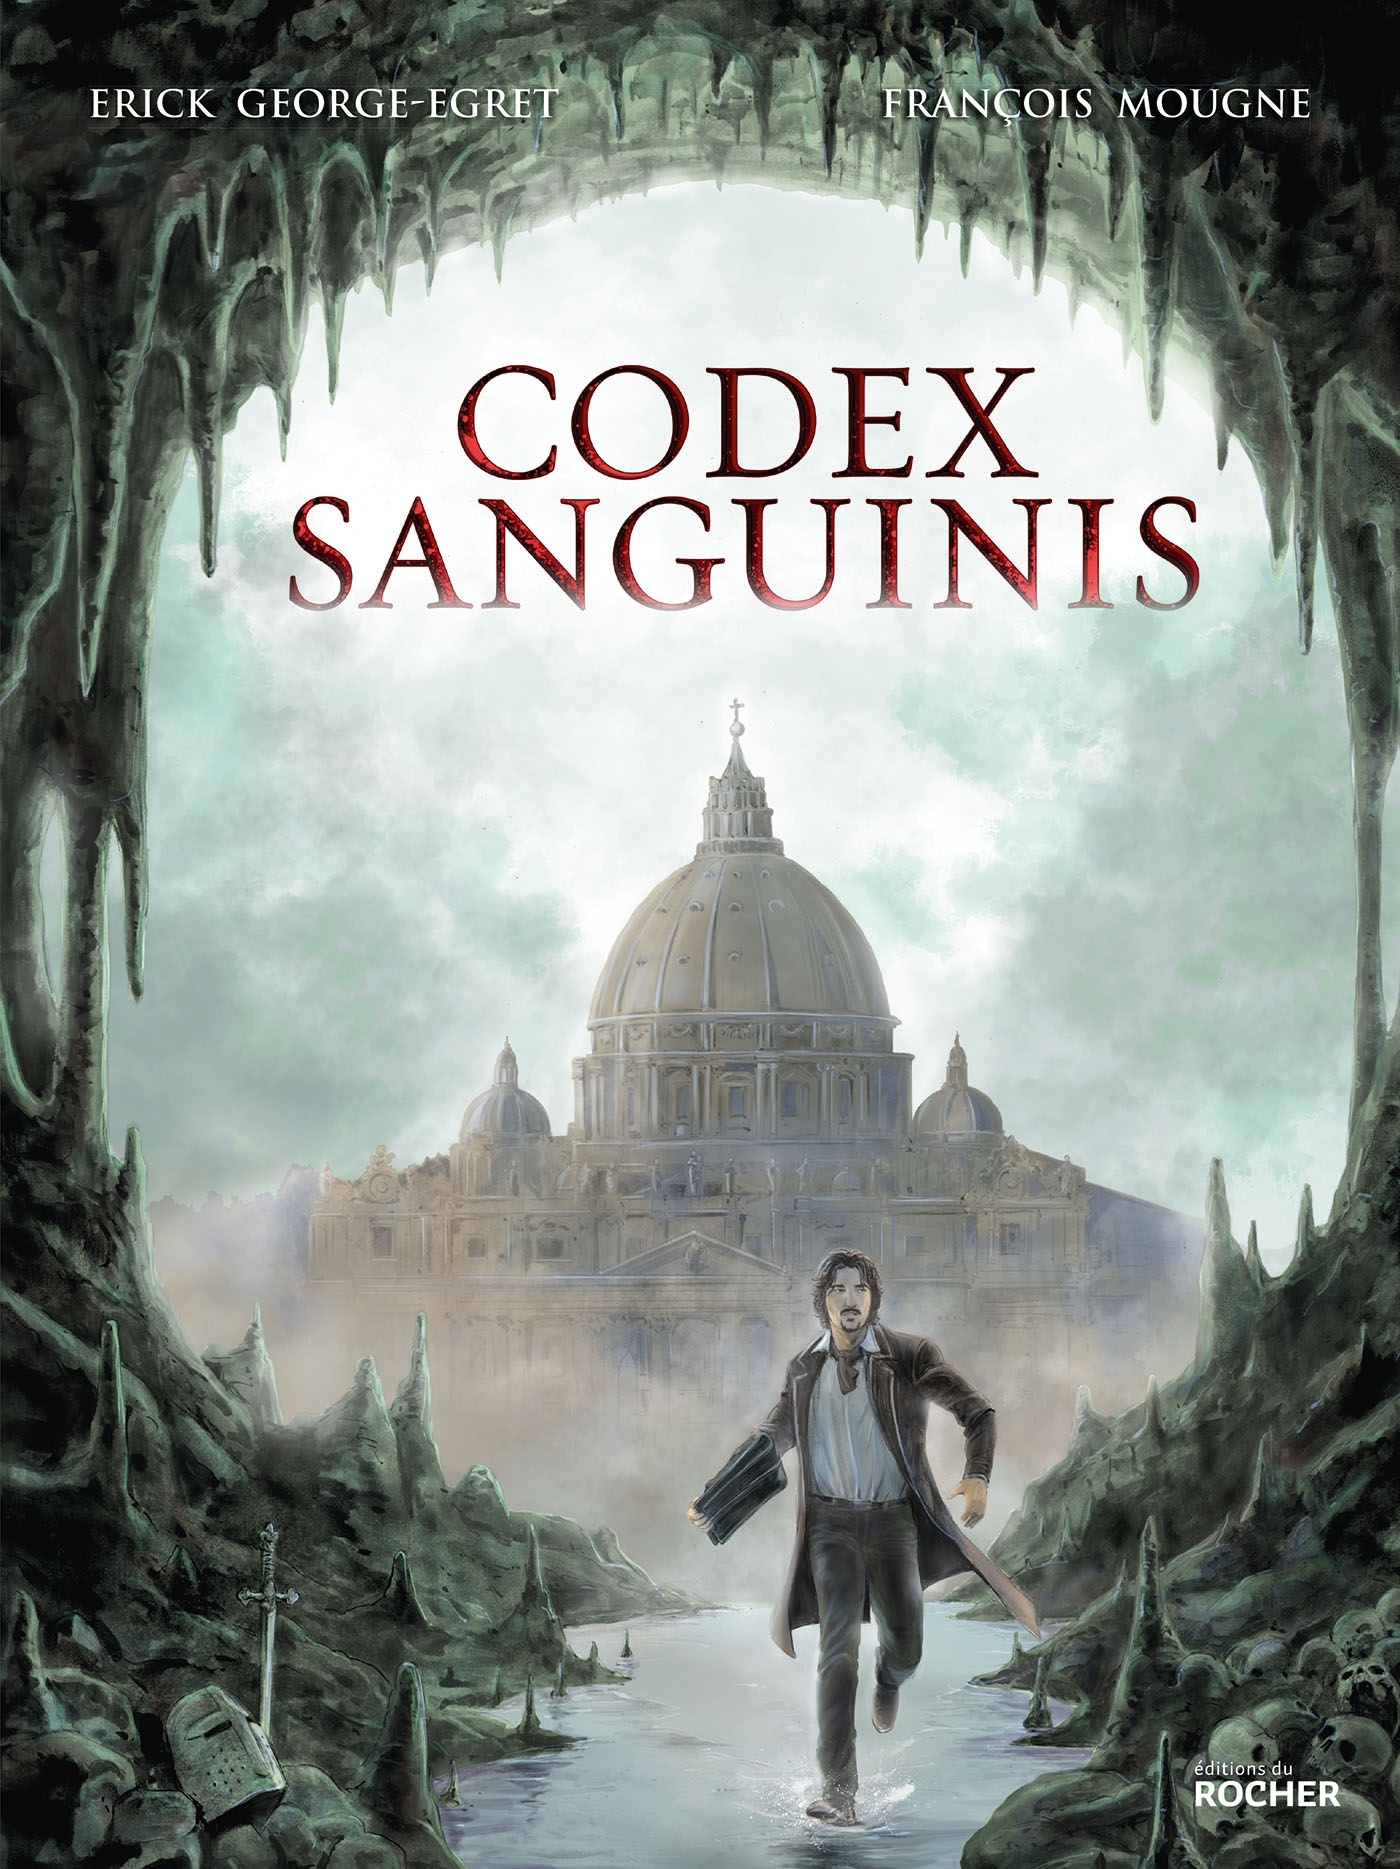 CODEX SANGUINIS